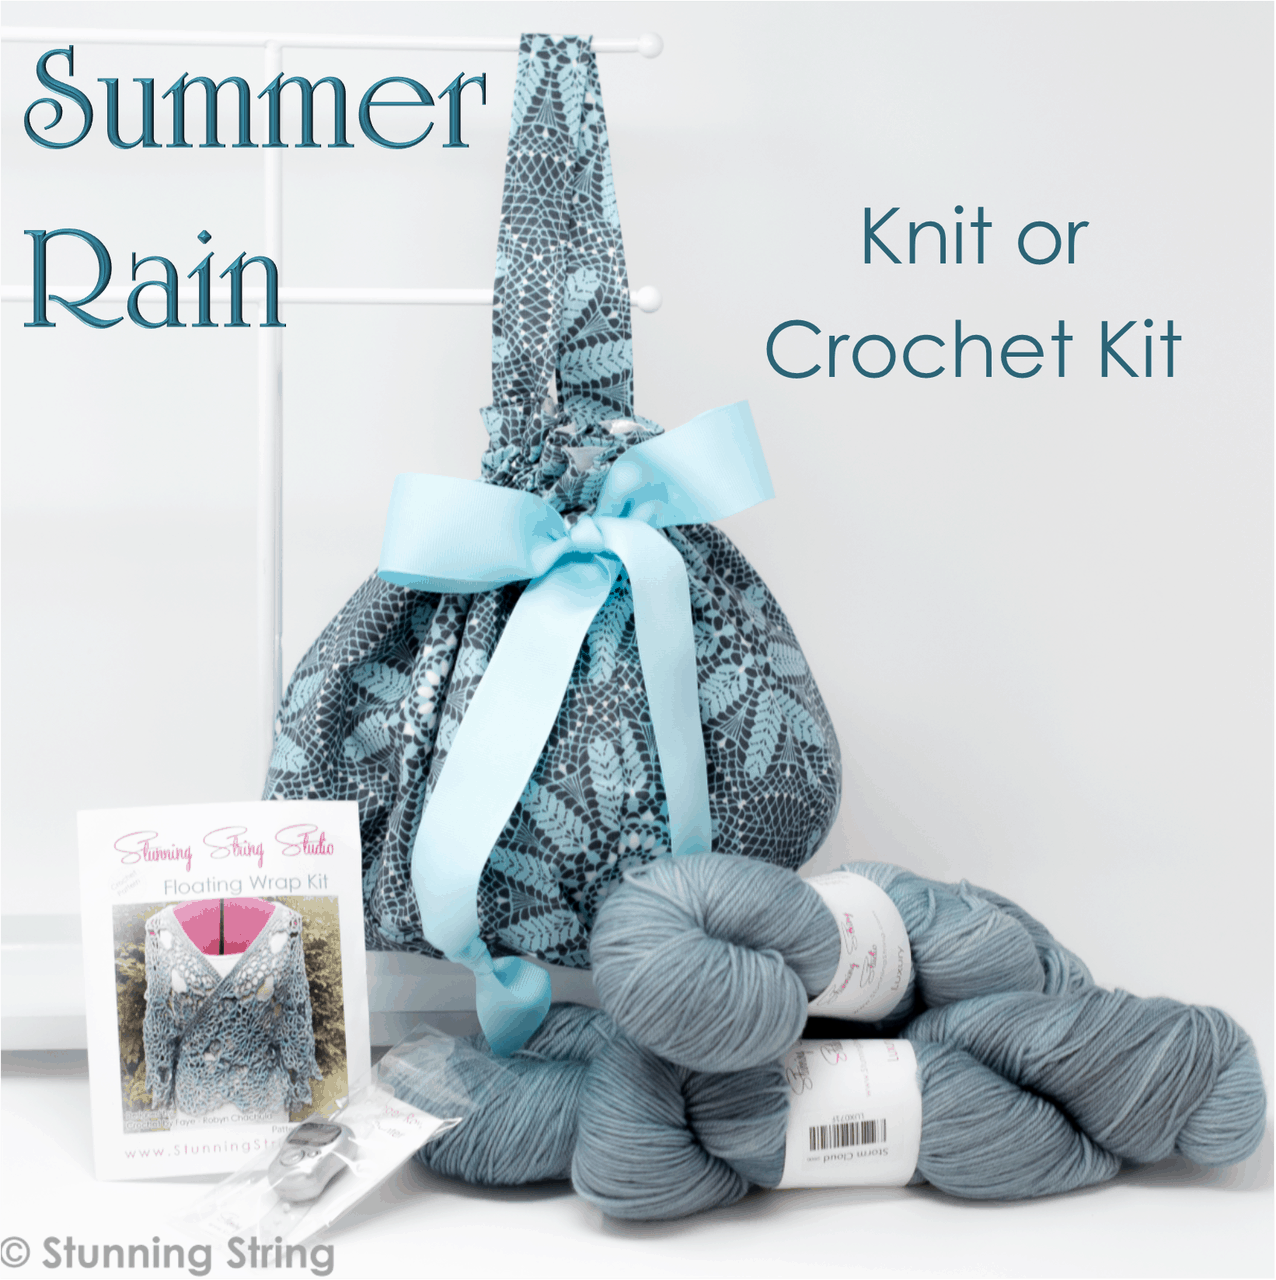 Summer Rain knit or crochet Small Batch Kit